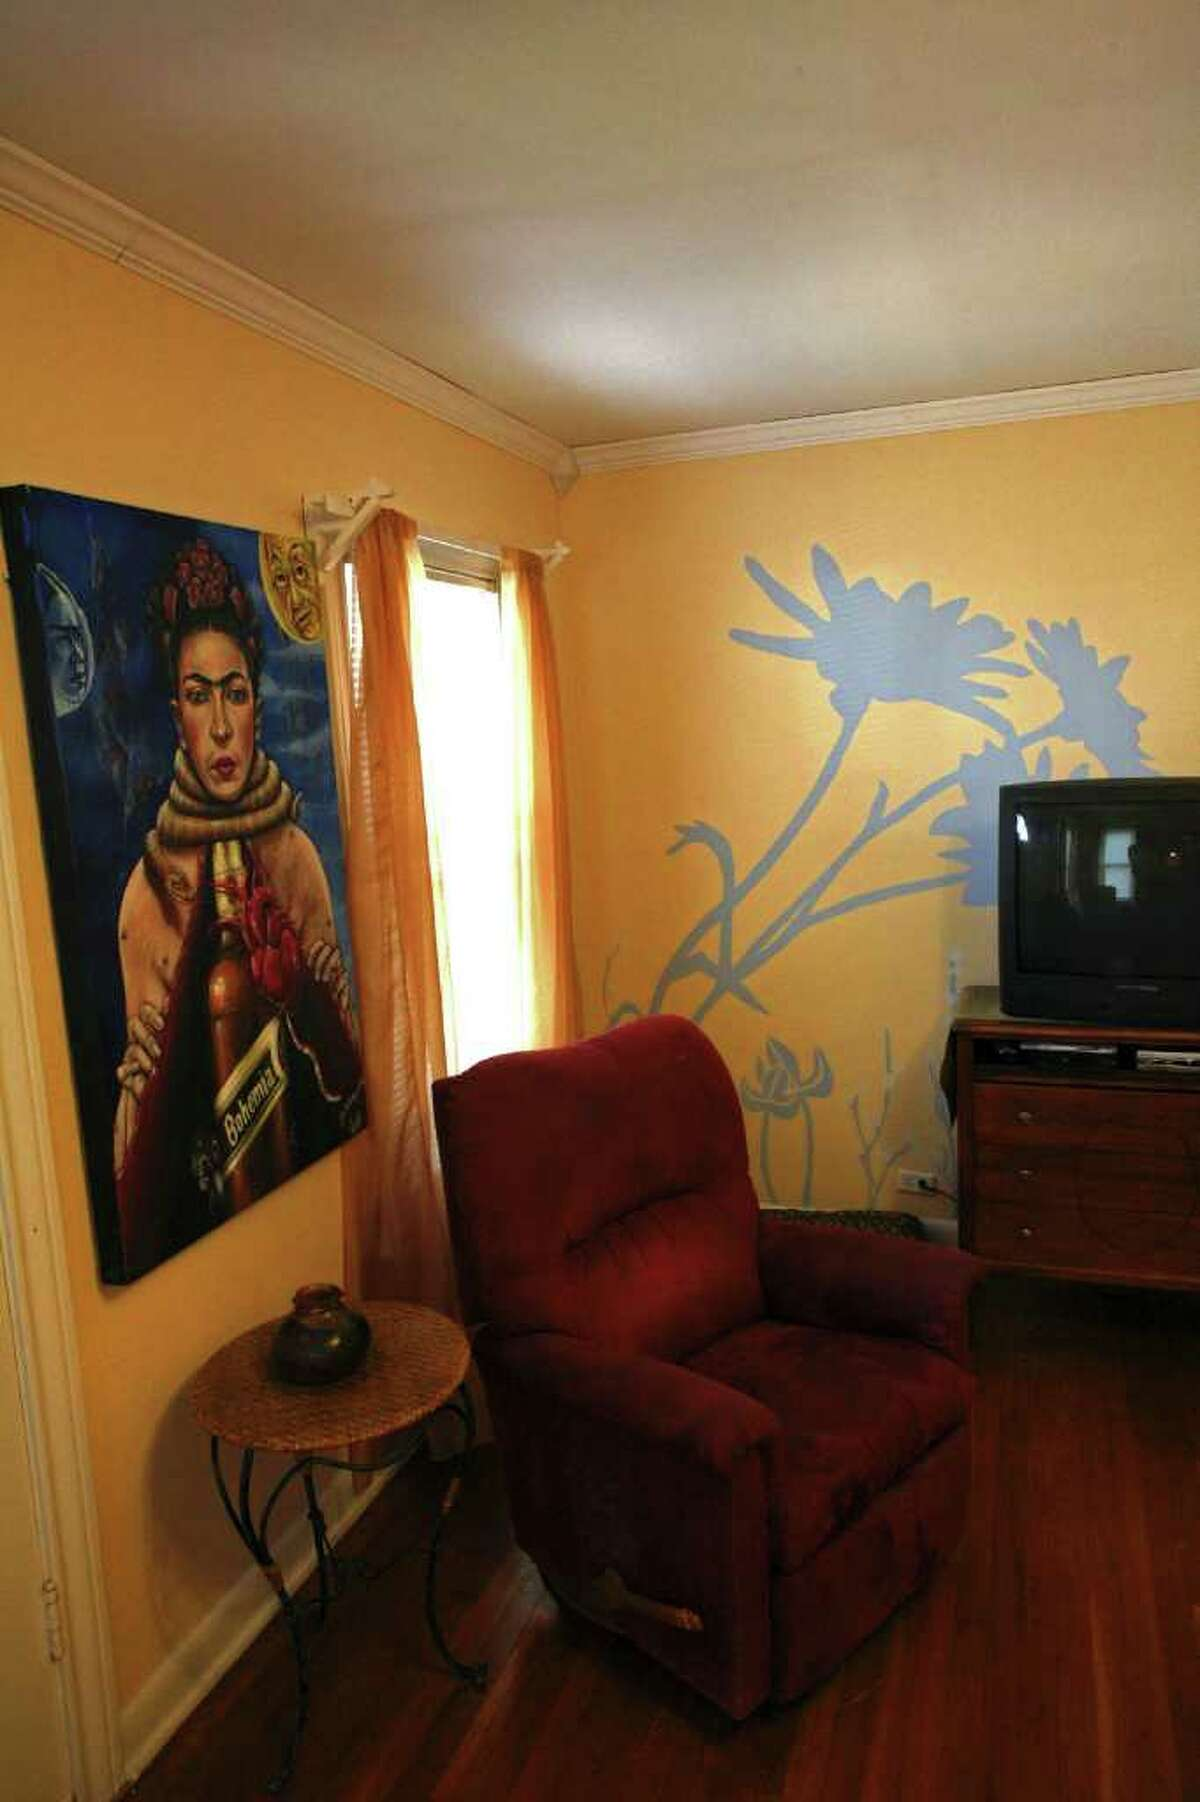 A painting by Jose Guajardo dominates one wall in the living room; Sarah Shore painted the large blue and white flowers on another wall.